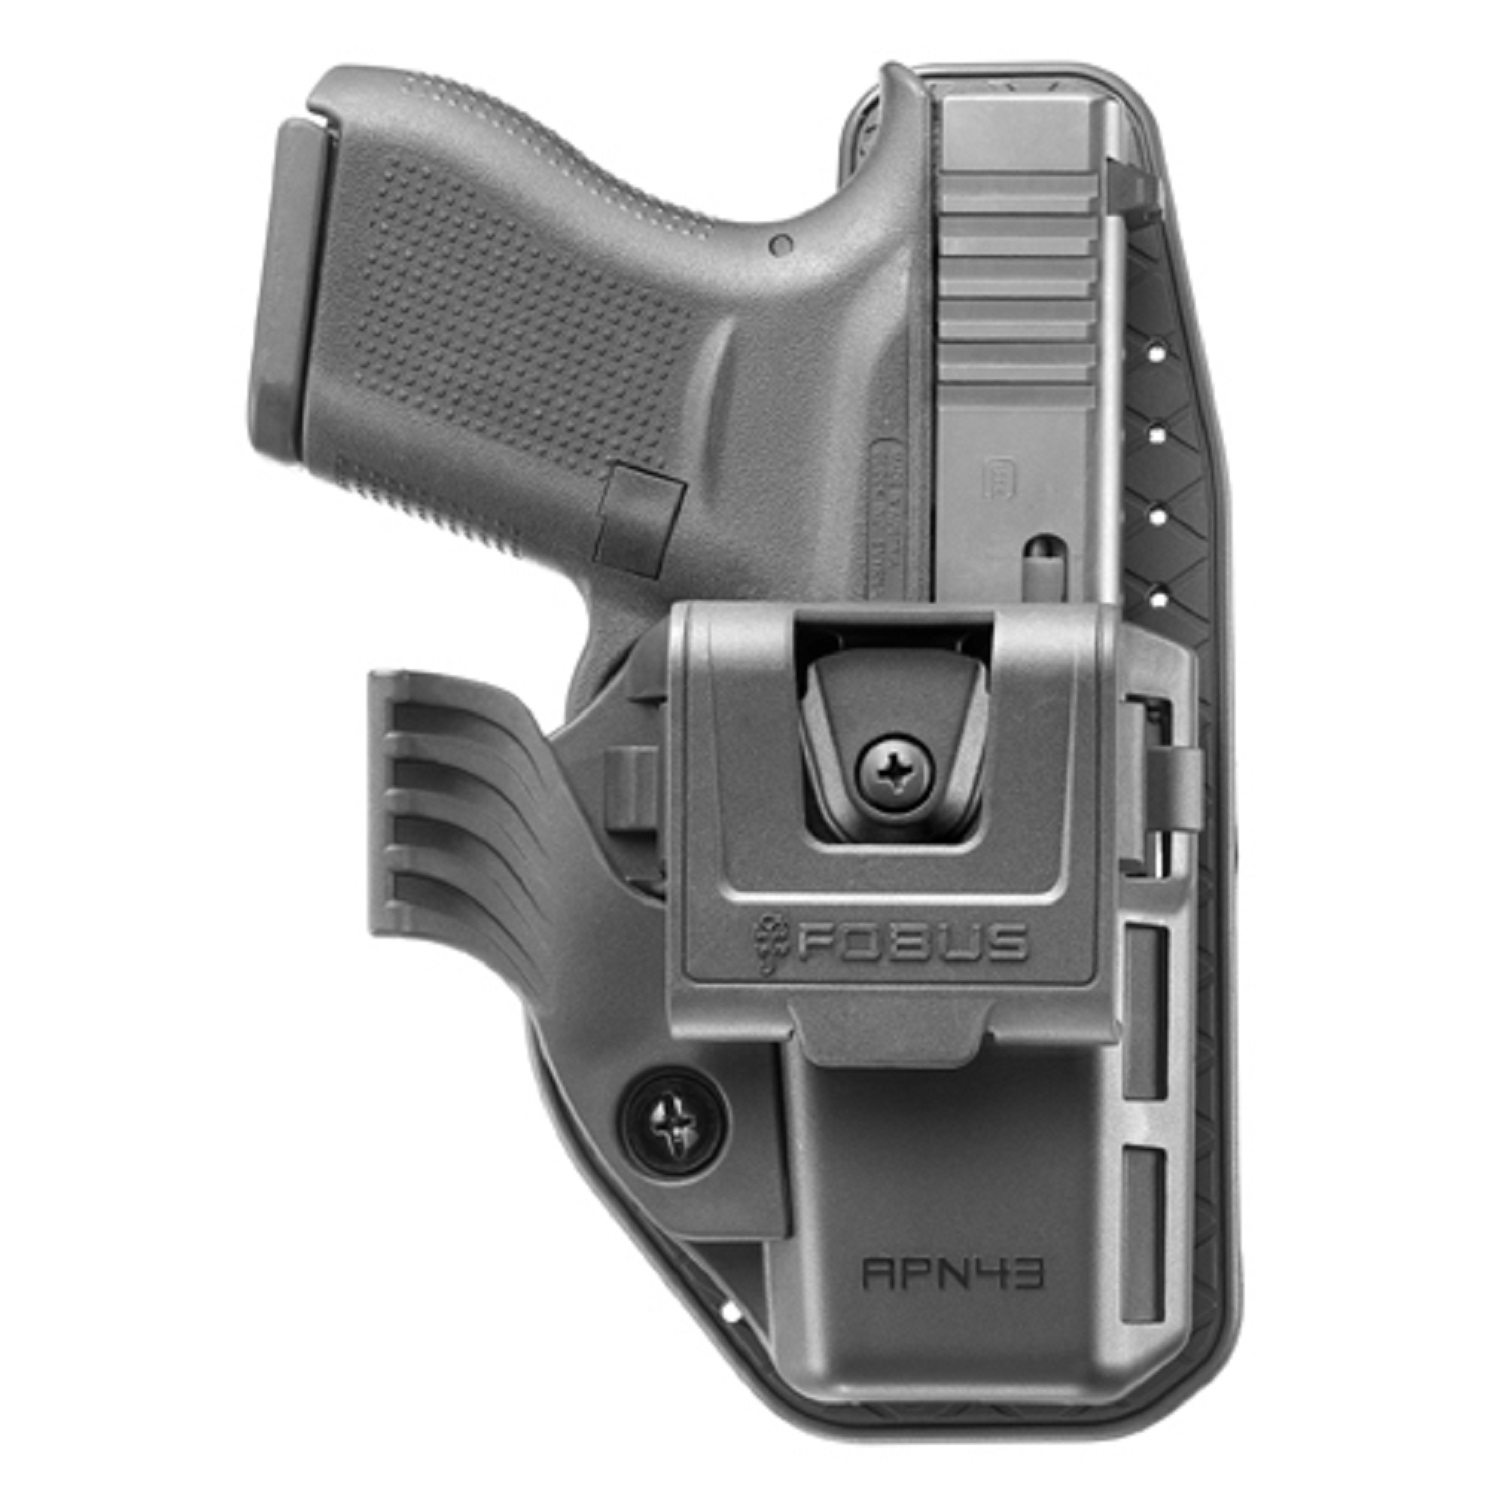 Fobus Appendix Holster Glock 43, Ambidextrous, Black by Fobus